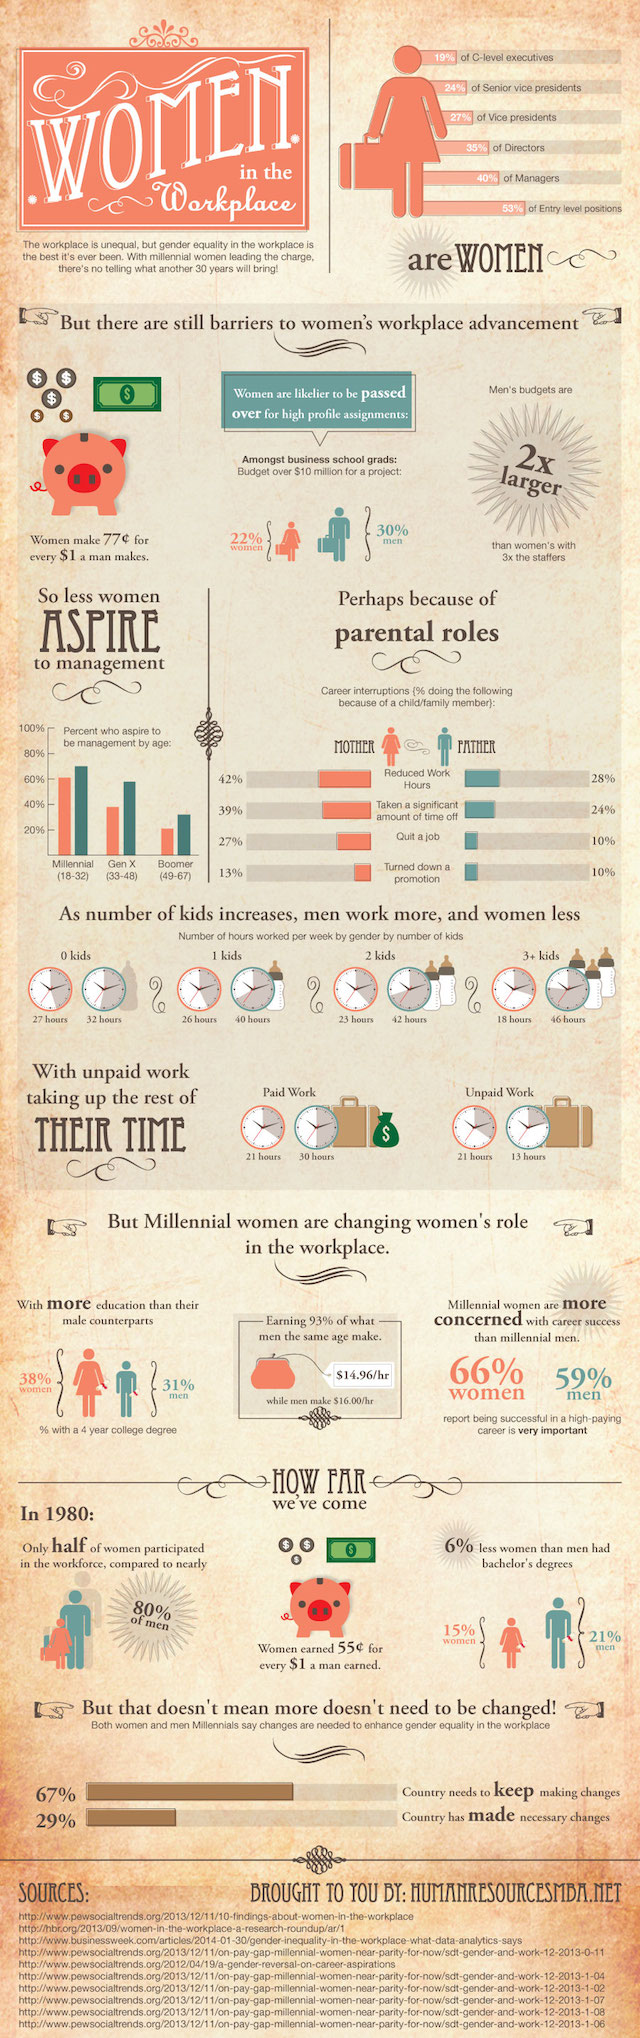 women in workplace Then and Now: Women in the Workplace (INFOGRAPHIC)